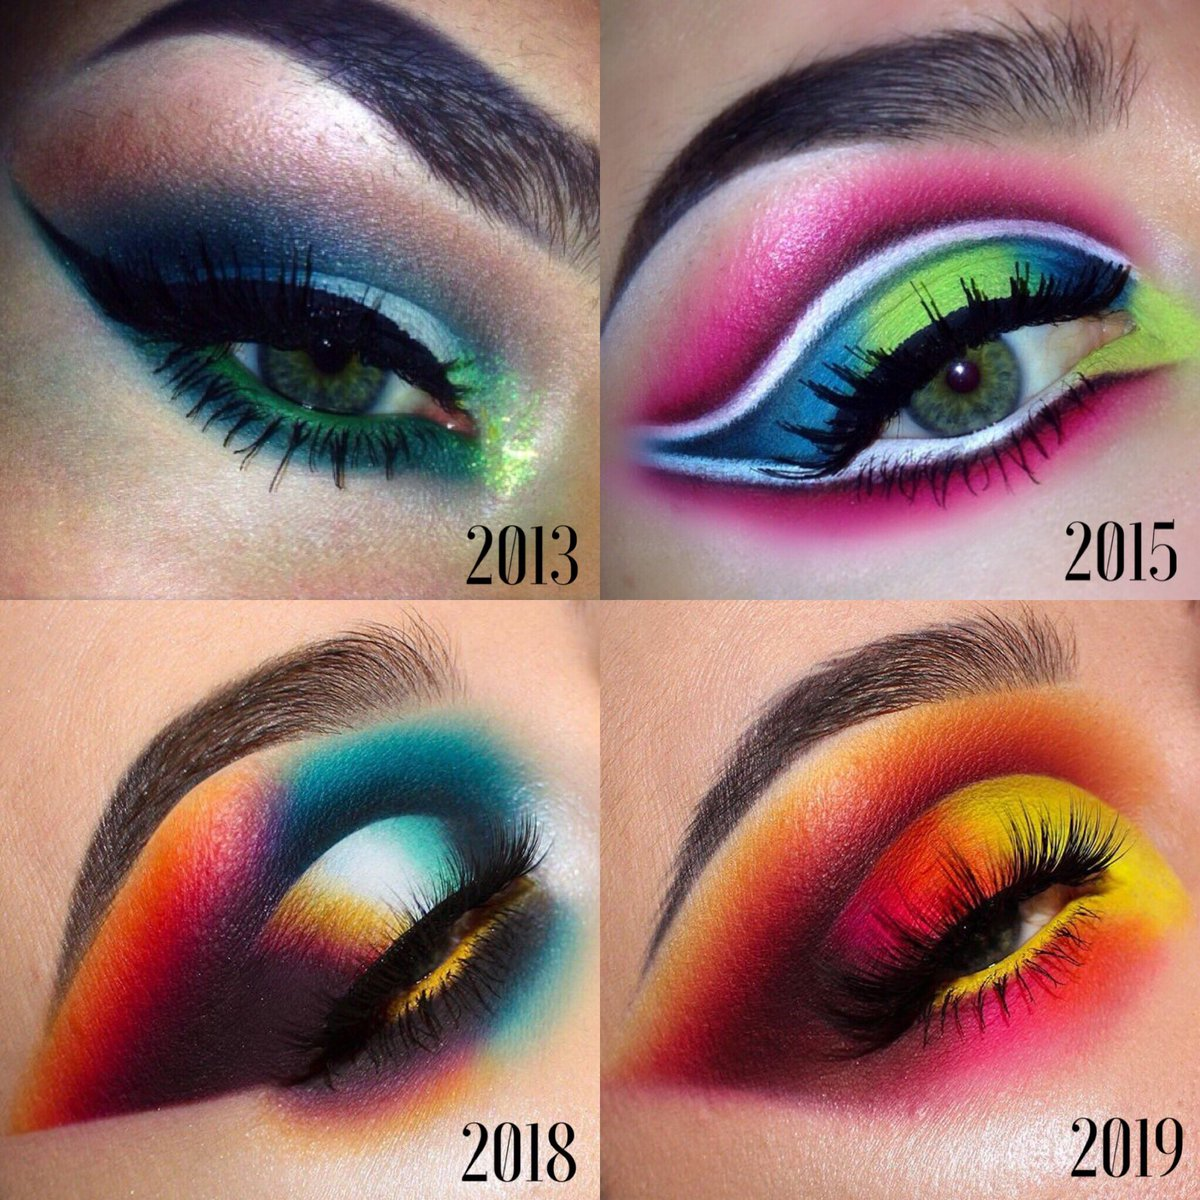 Sometimes it's good to look back and see how far you've come. 👁 #neverstoplearning #makeup #makeupprogress